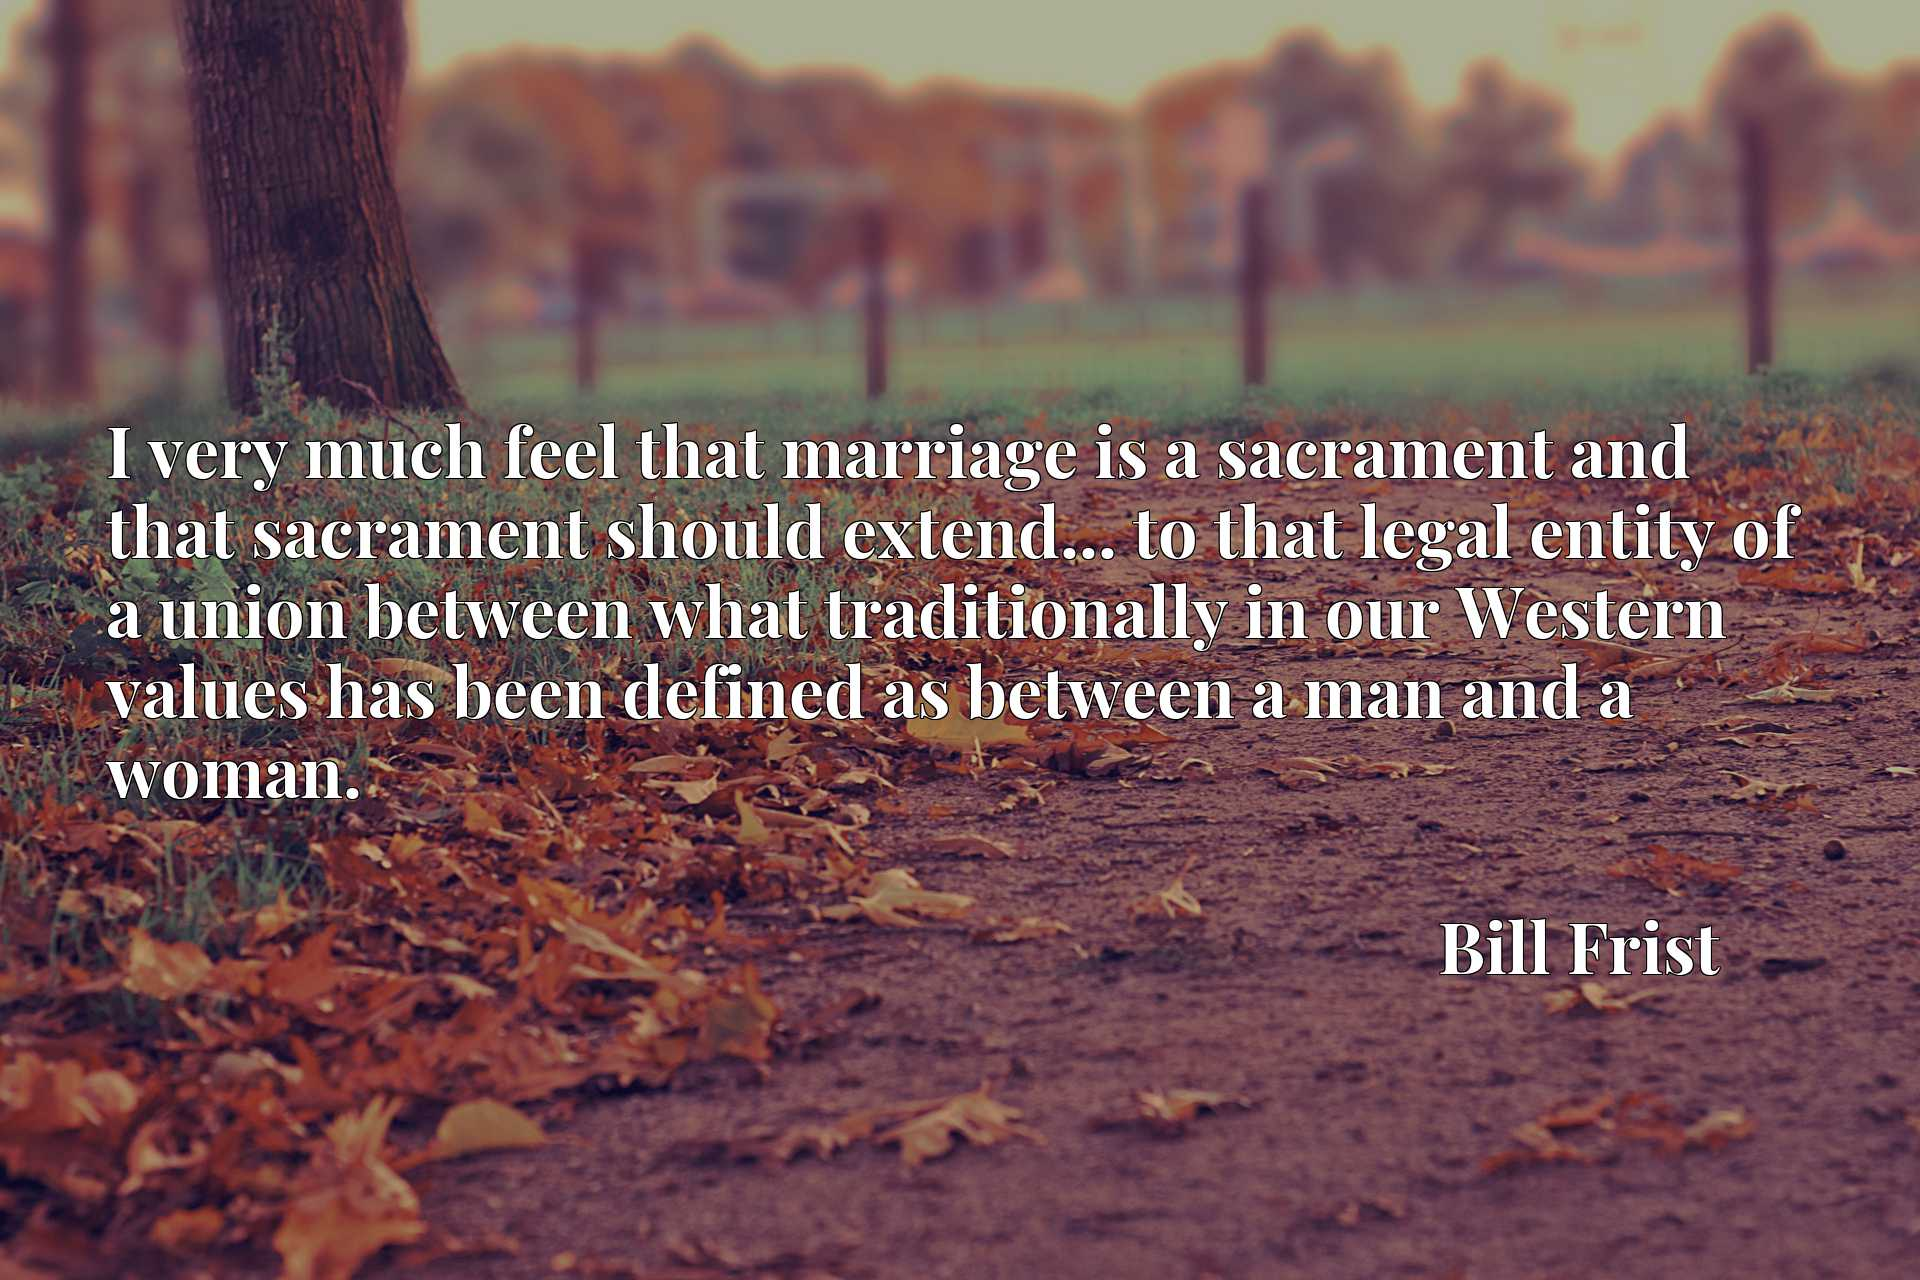 Quote Picture :I very much feel that marriage is a sacrament and that sacrament should extend... to that legal entity of a union between what traditionally in our Western values has been defined as between a man and a woman.